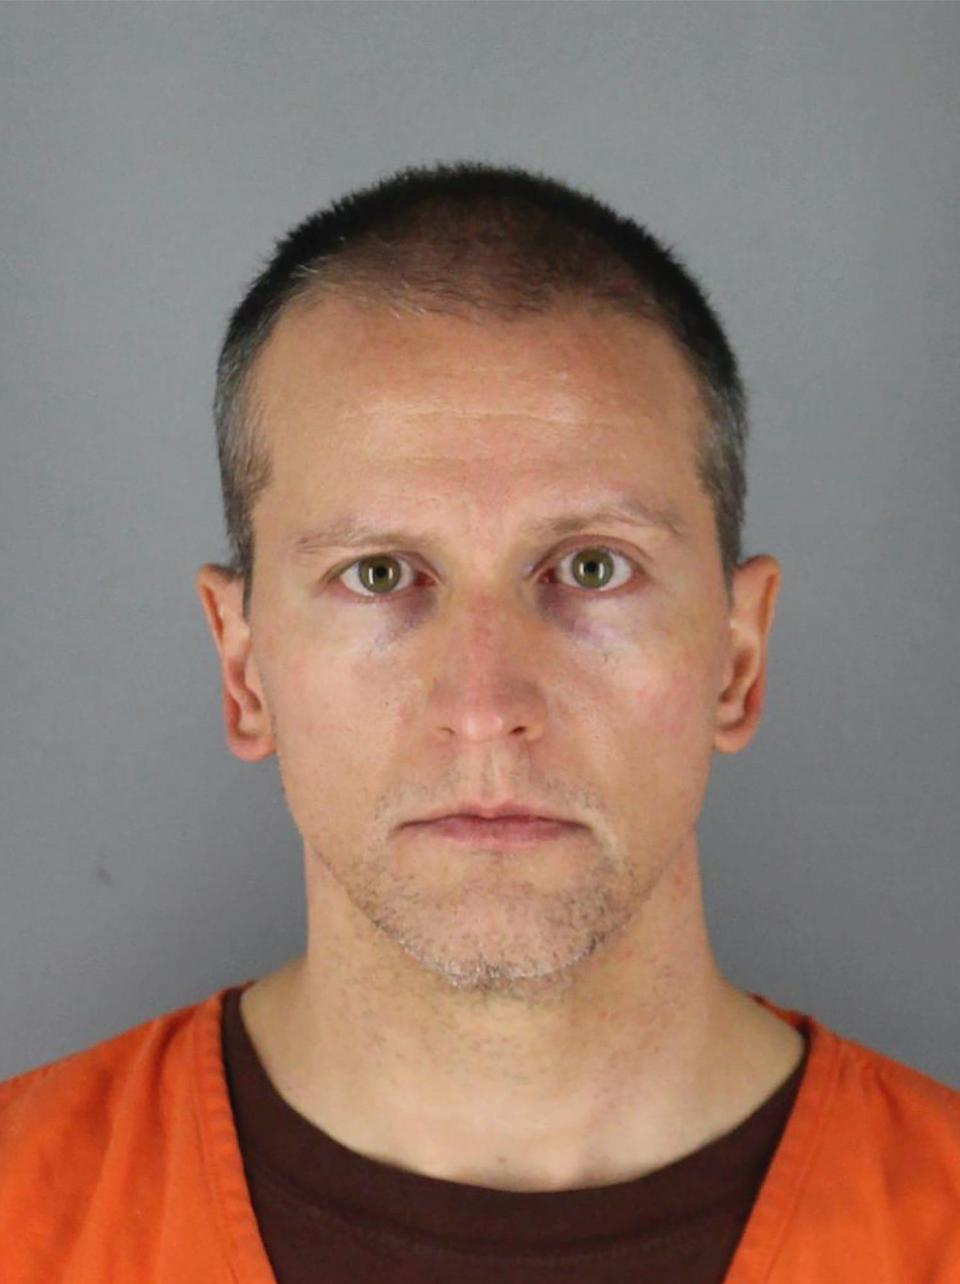 Former Minneapolis police officer Derek Chauvin faces charges of second-degree murder and manslaughter.